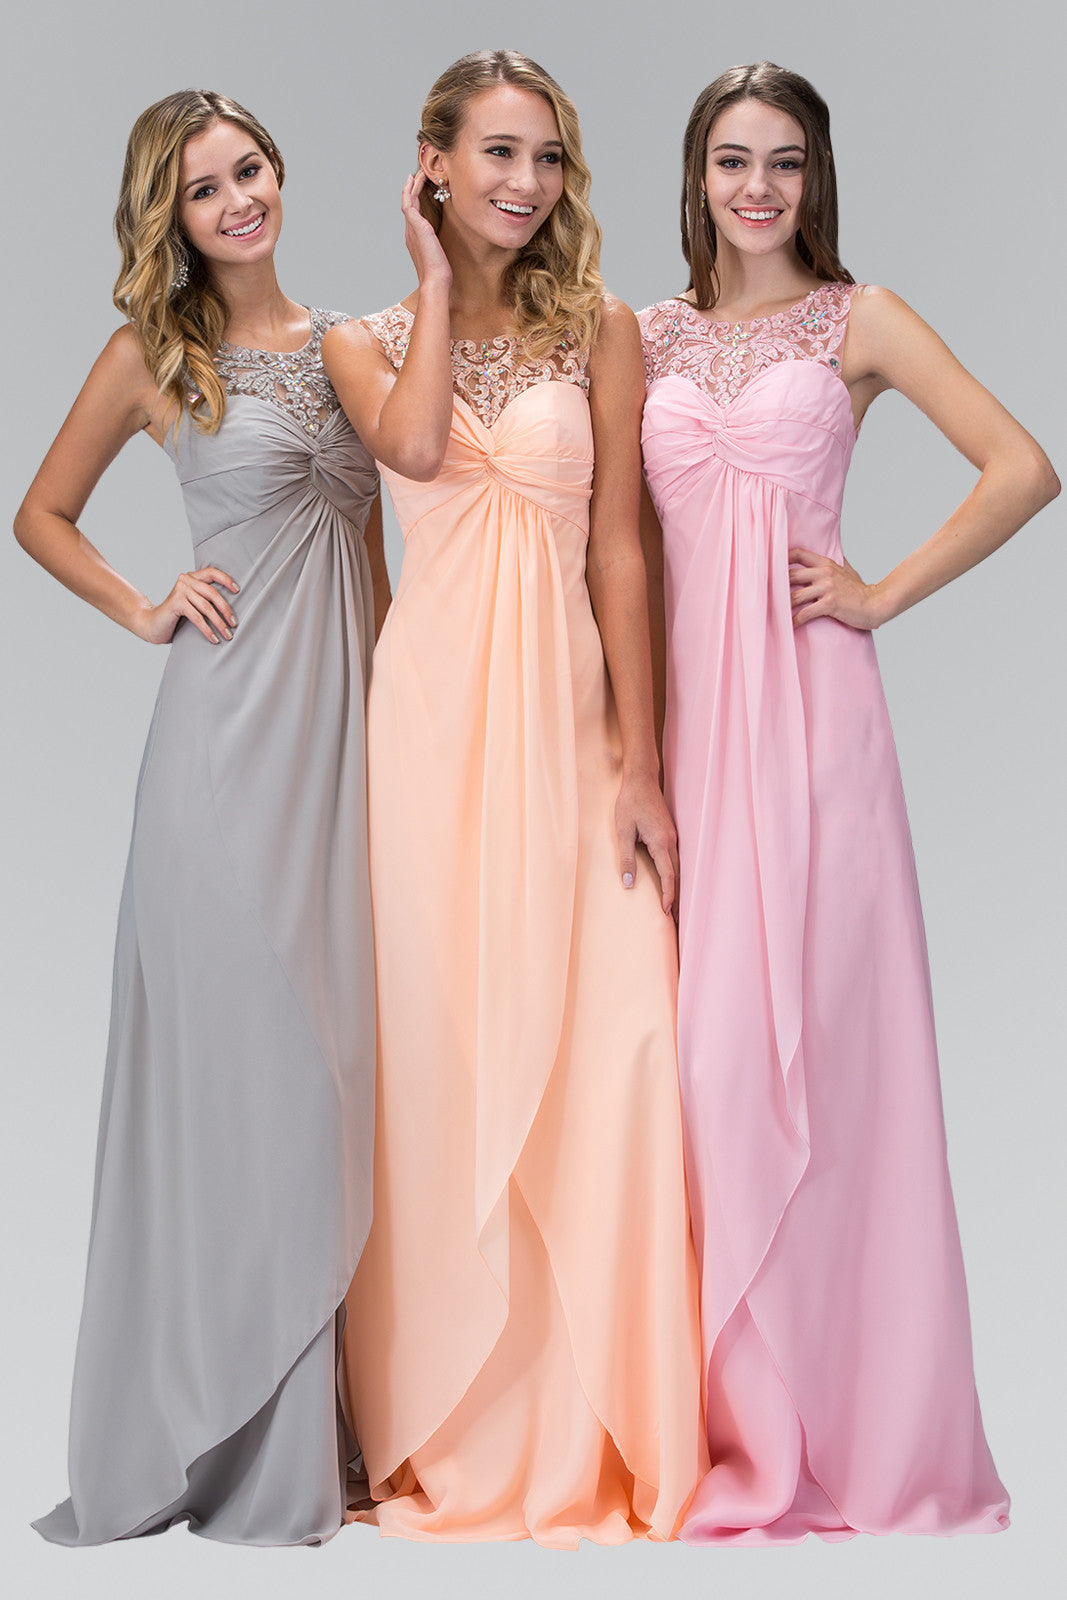 Empire waist long bridesmaid dress gl2061 simply fab dress empire waist long bridesmaid dress gl2061 simply fab dress ombrellifo Image collections